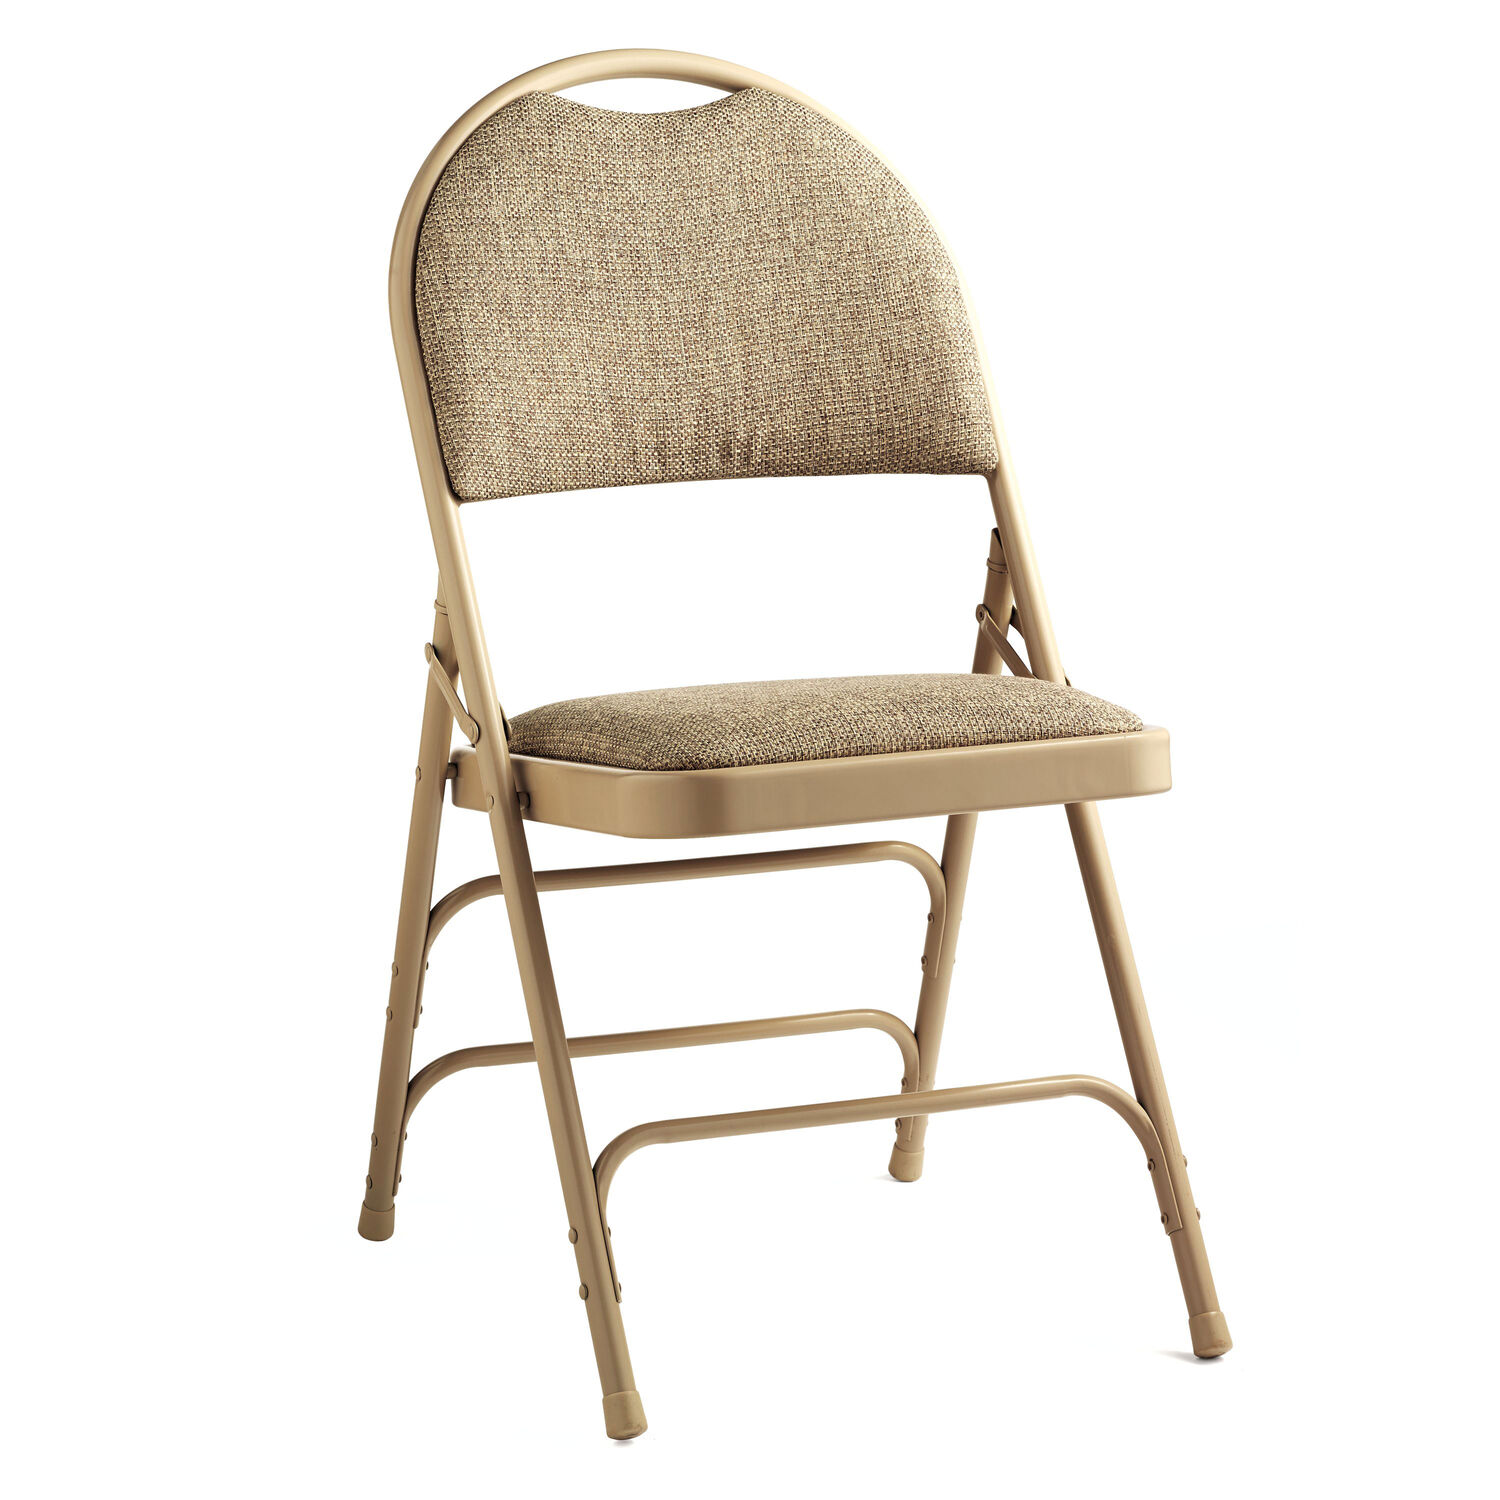 Peachy Samsonite Steel Fabric Folding Chair With Memory Foam Case 4 Pdpeps Interior Chair Design Pdpepsorg